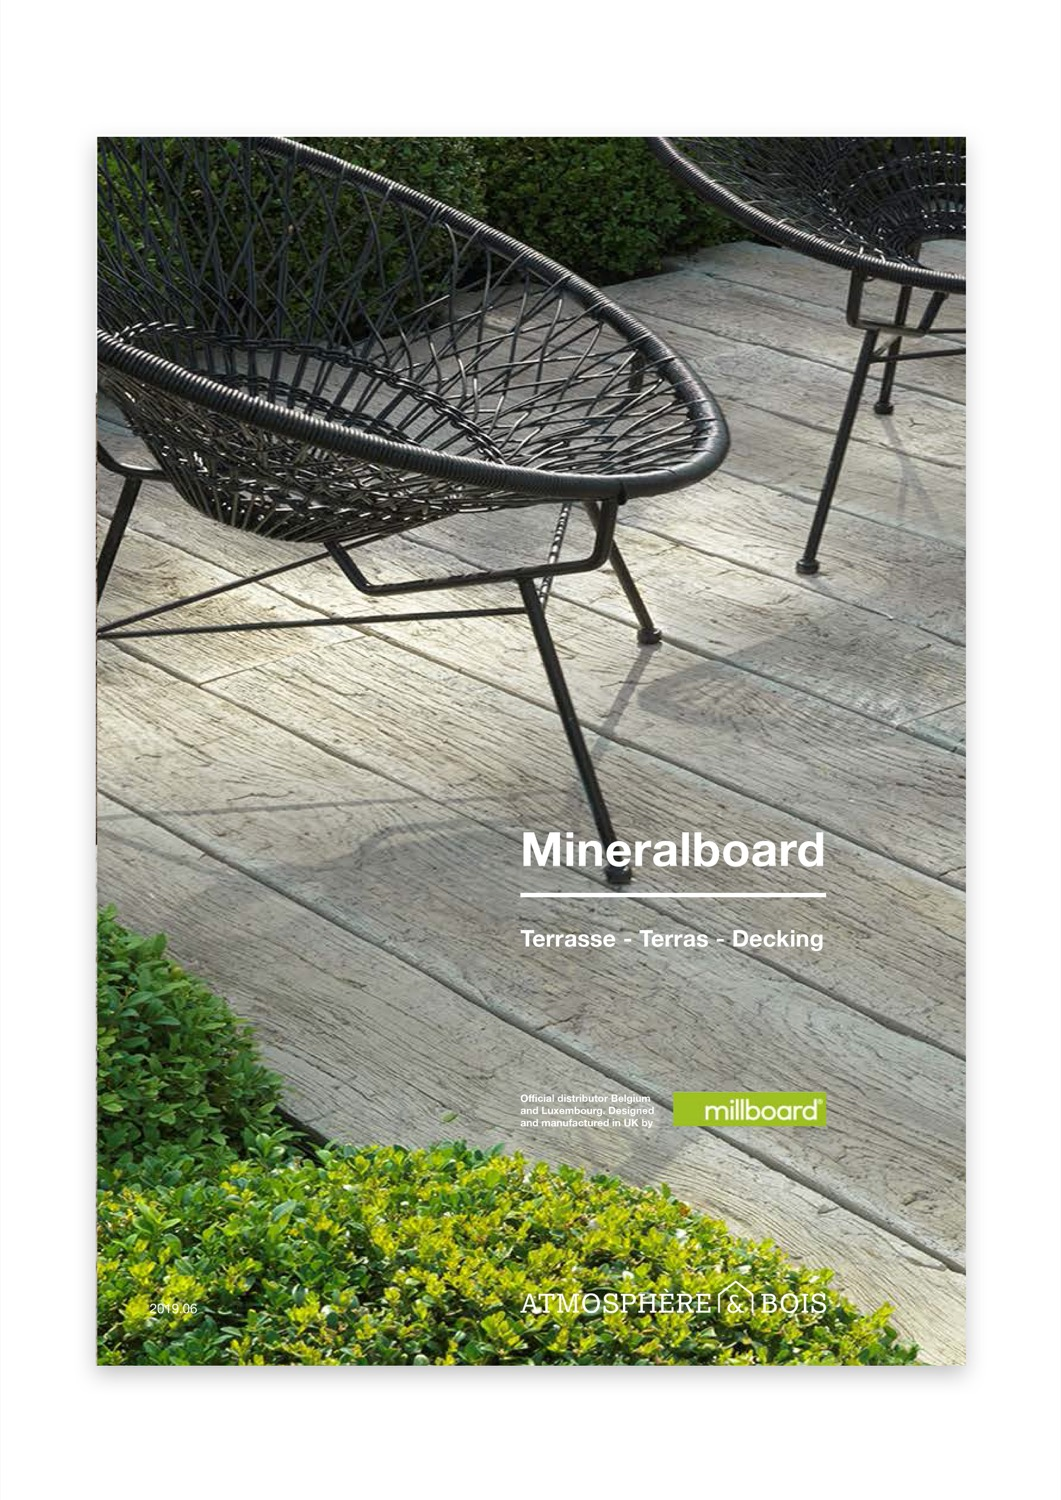 A&B_CATALOGUE_COVER_MINERALBOARD_BE.jpg